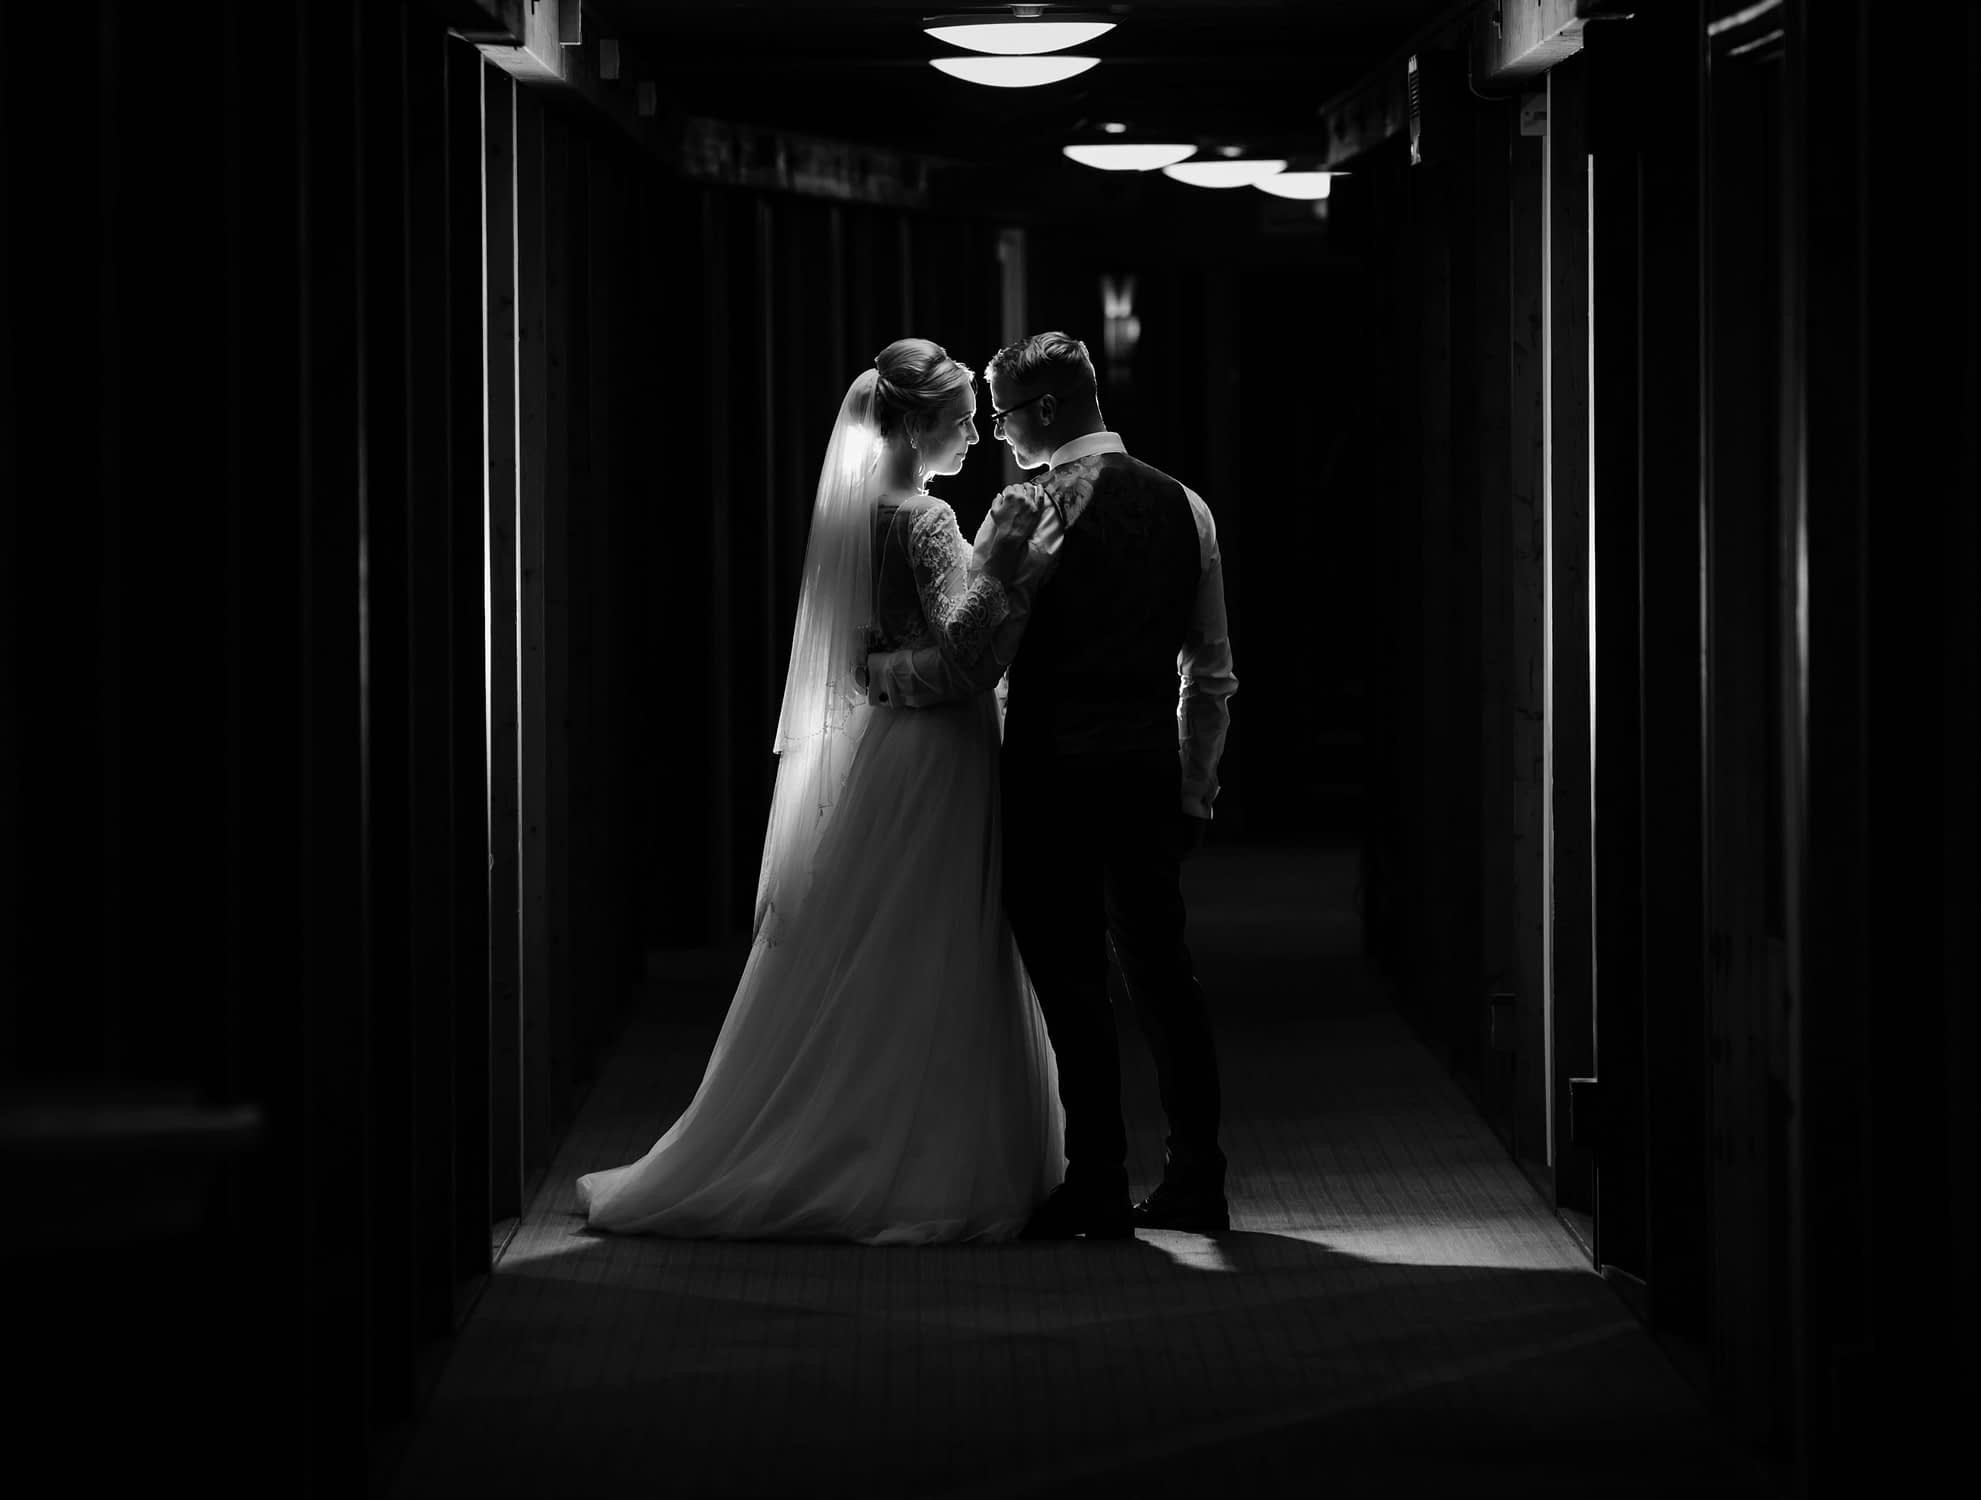 couple standing together at night in hotel corridor